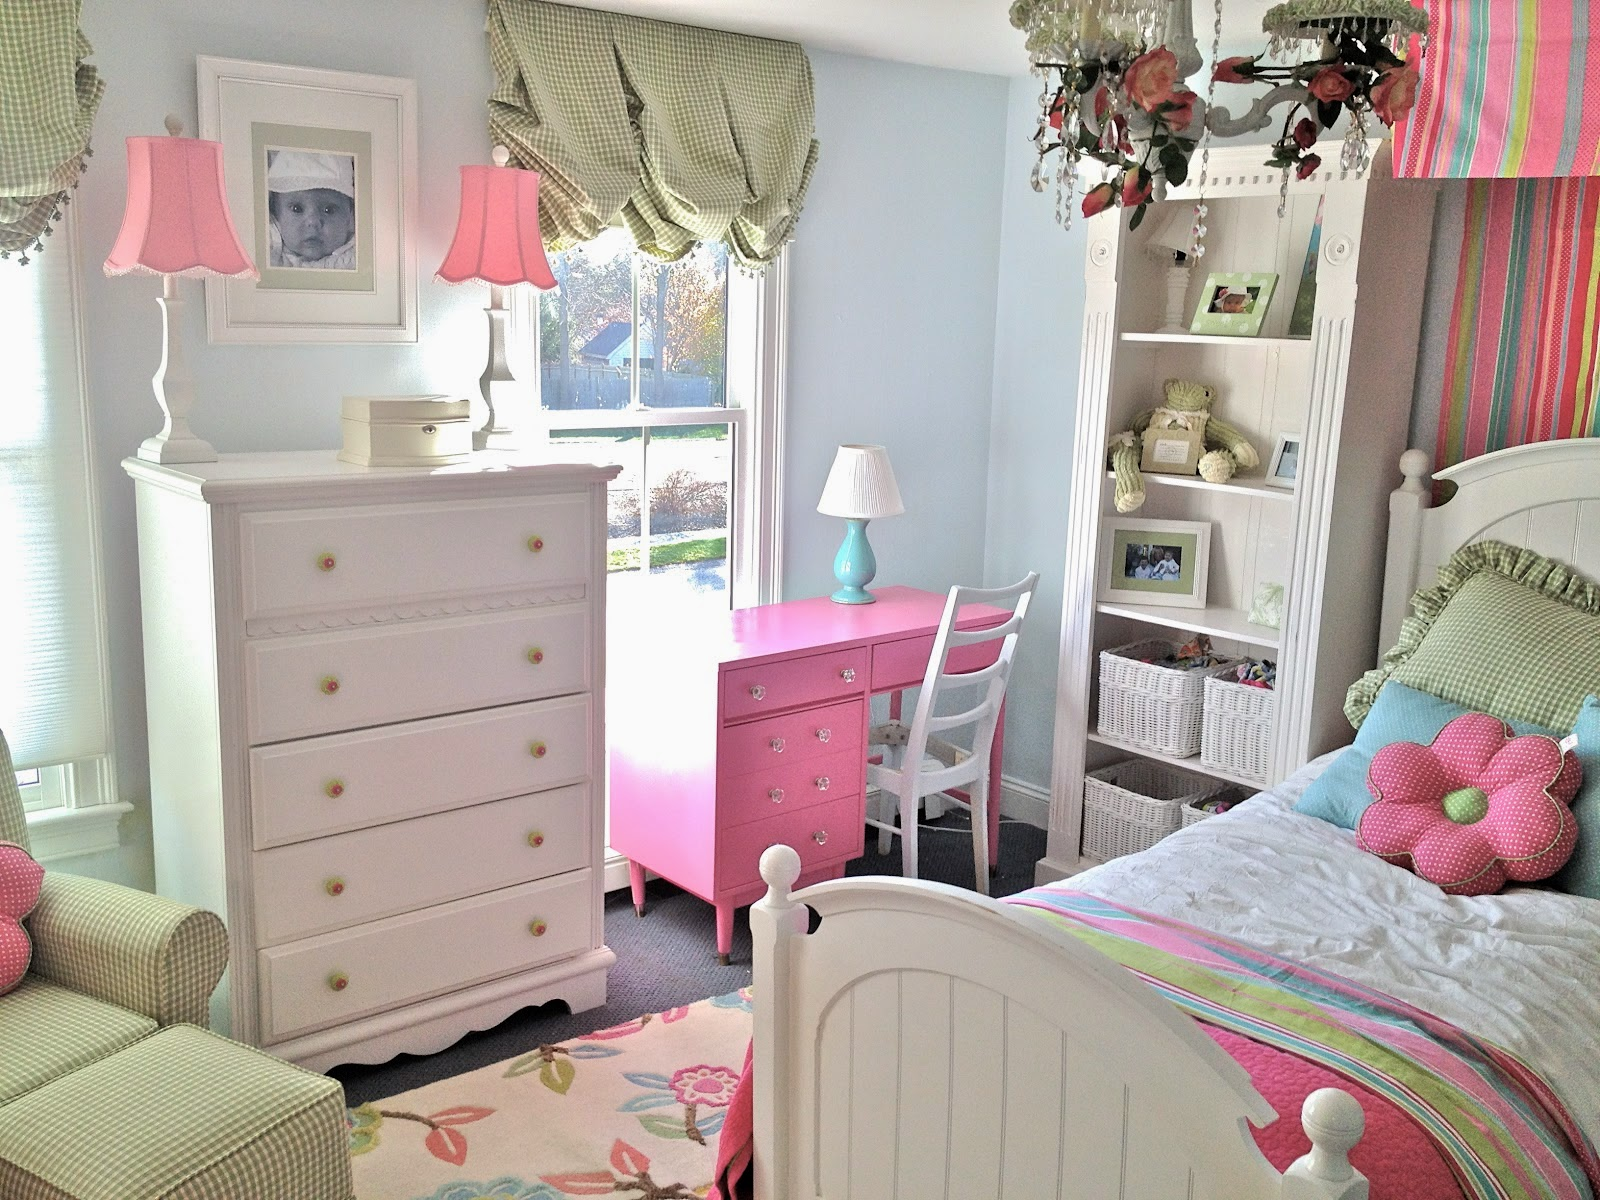 Astounding Teenage Bedroom For Girl Ideas Sophisticated Interior